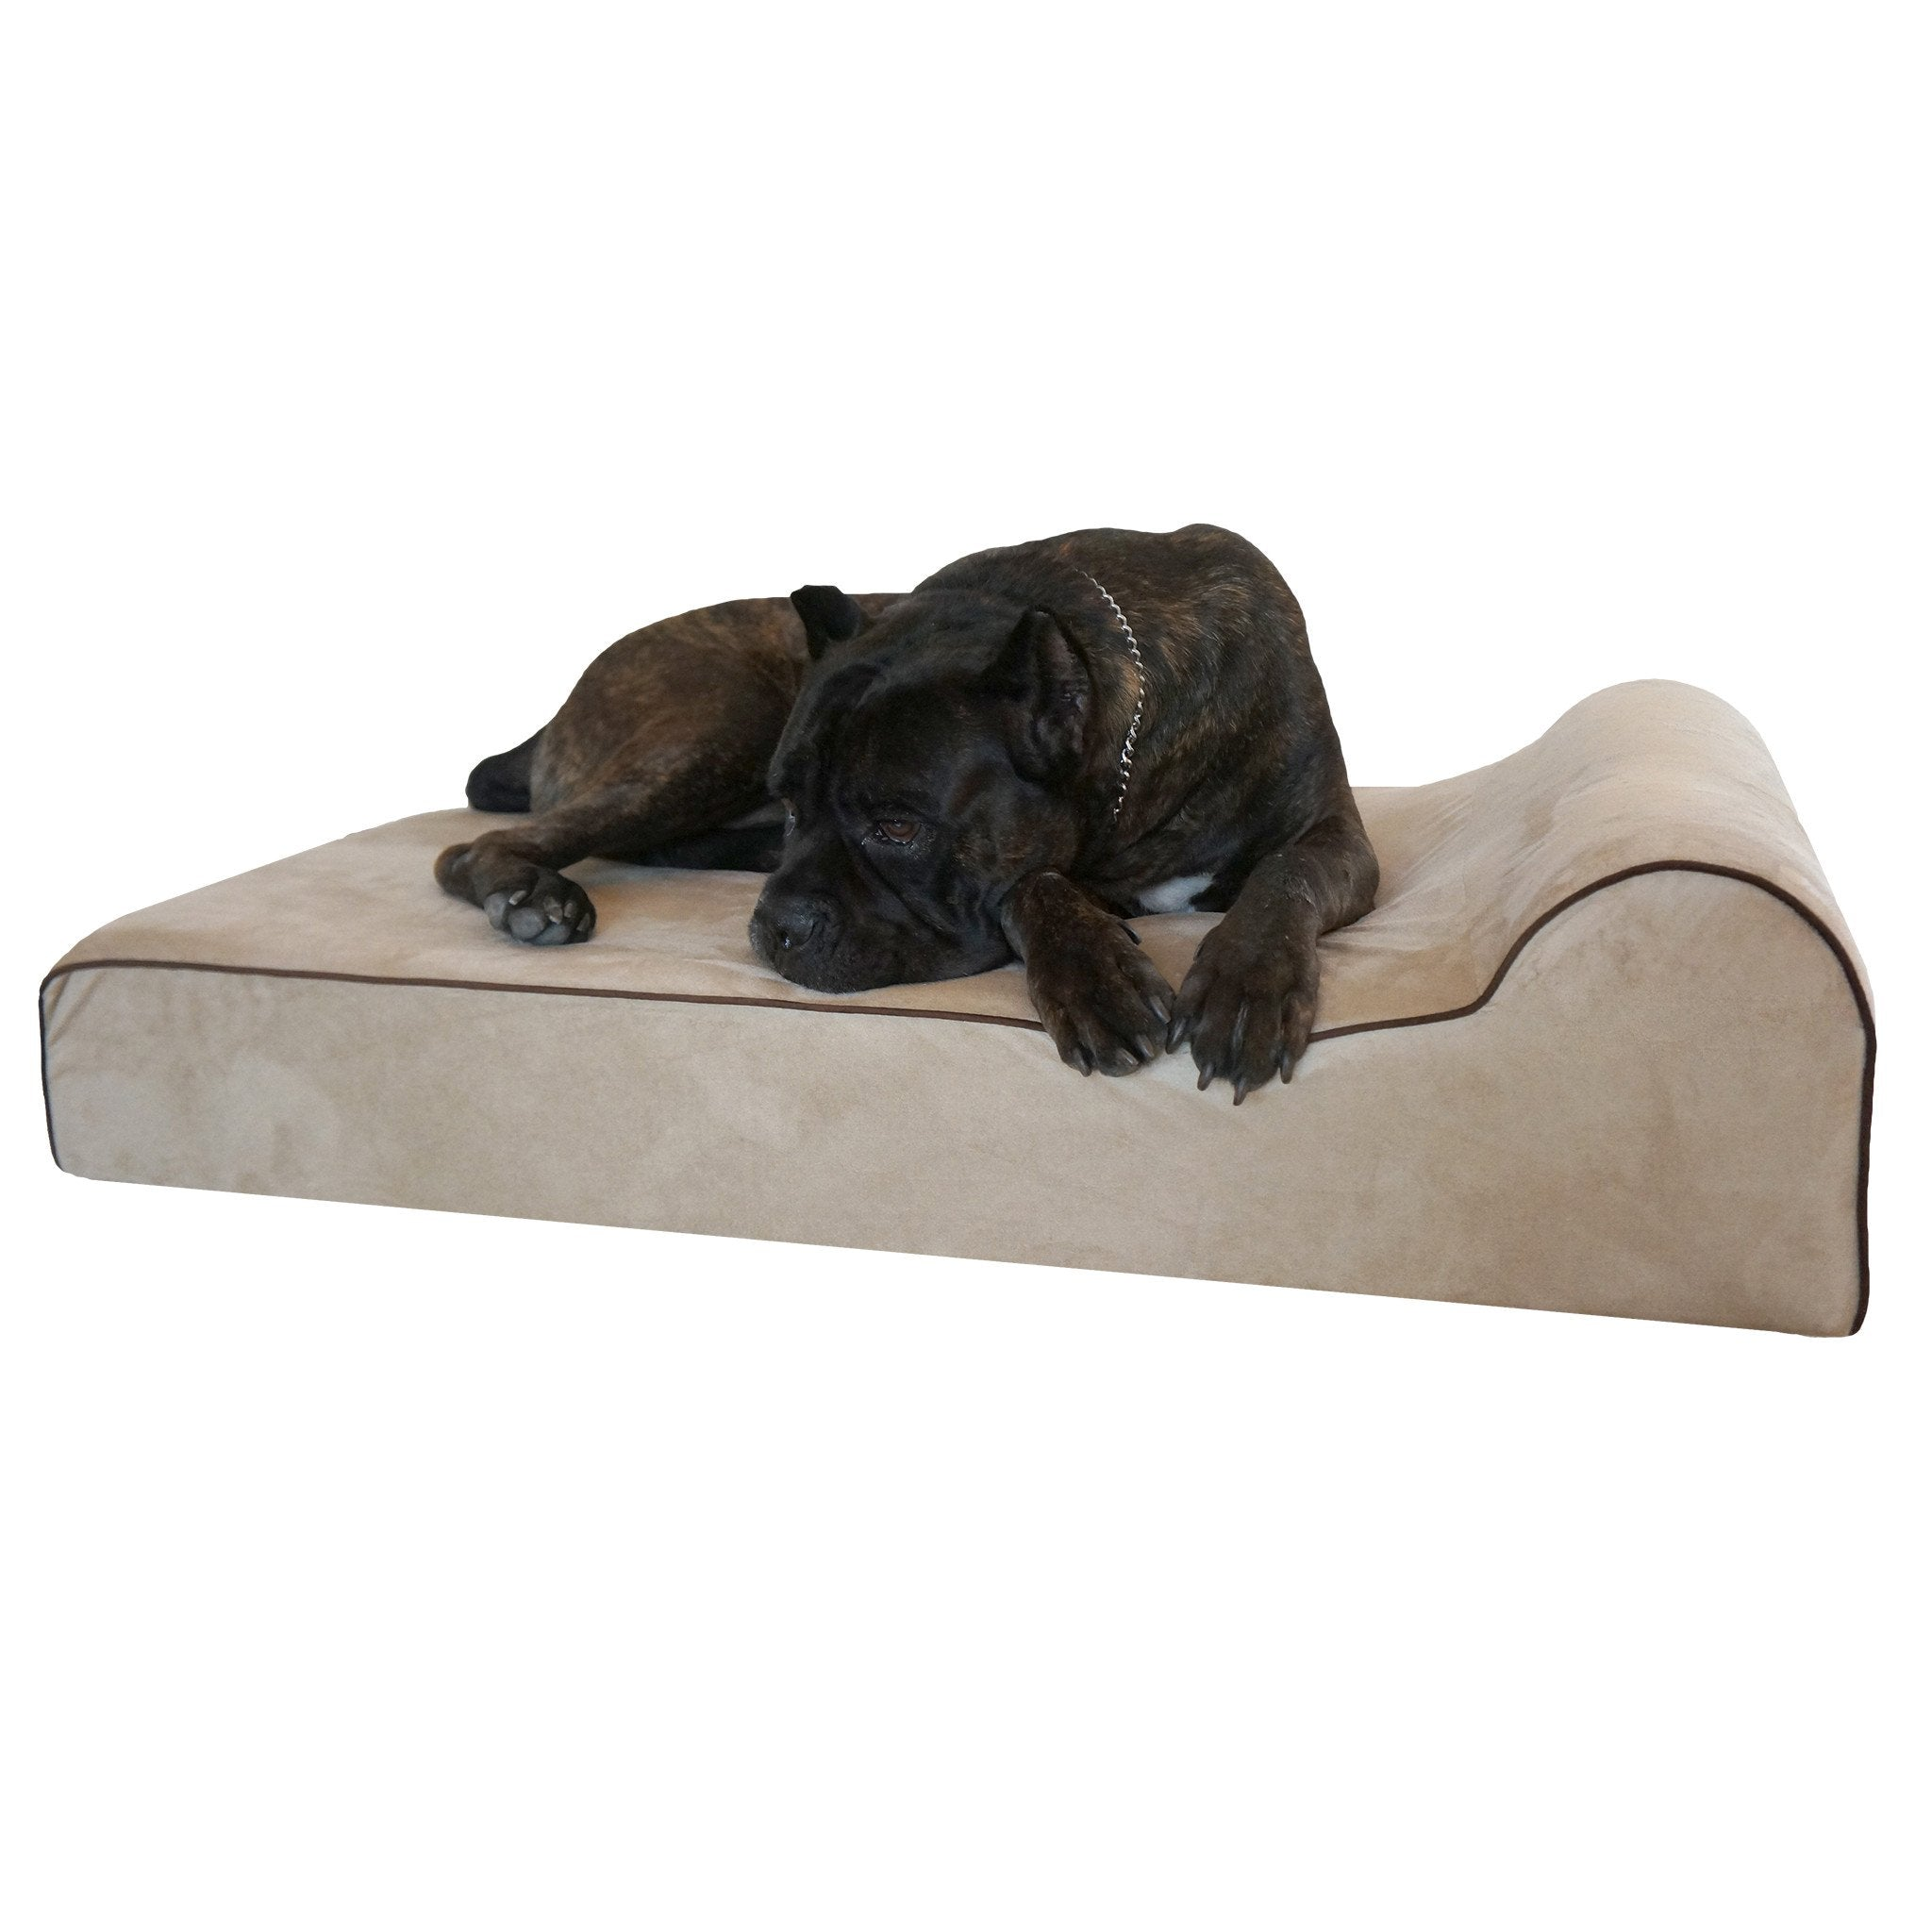 beautyrest memory free dog simmons supplies foam overstock colossal shipping pet orthopedic bed today rest product